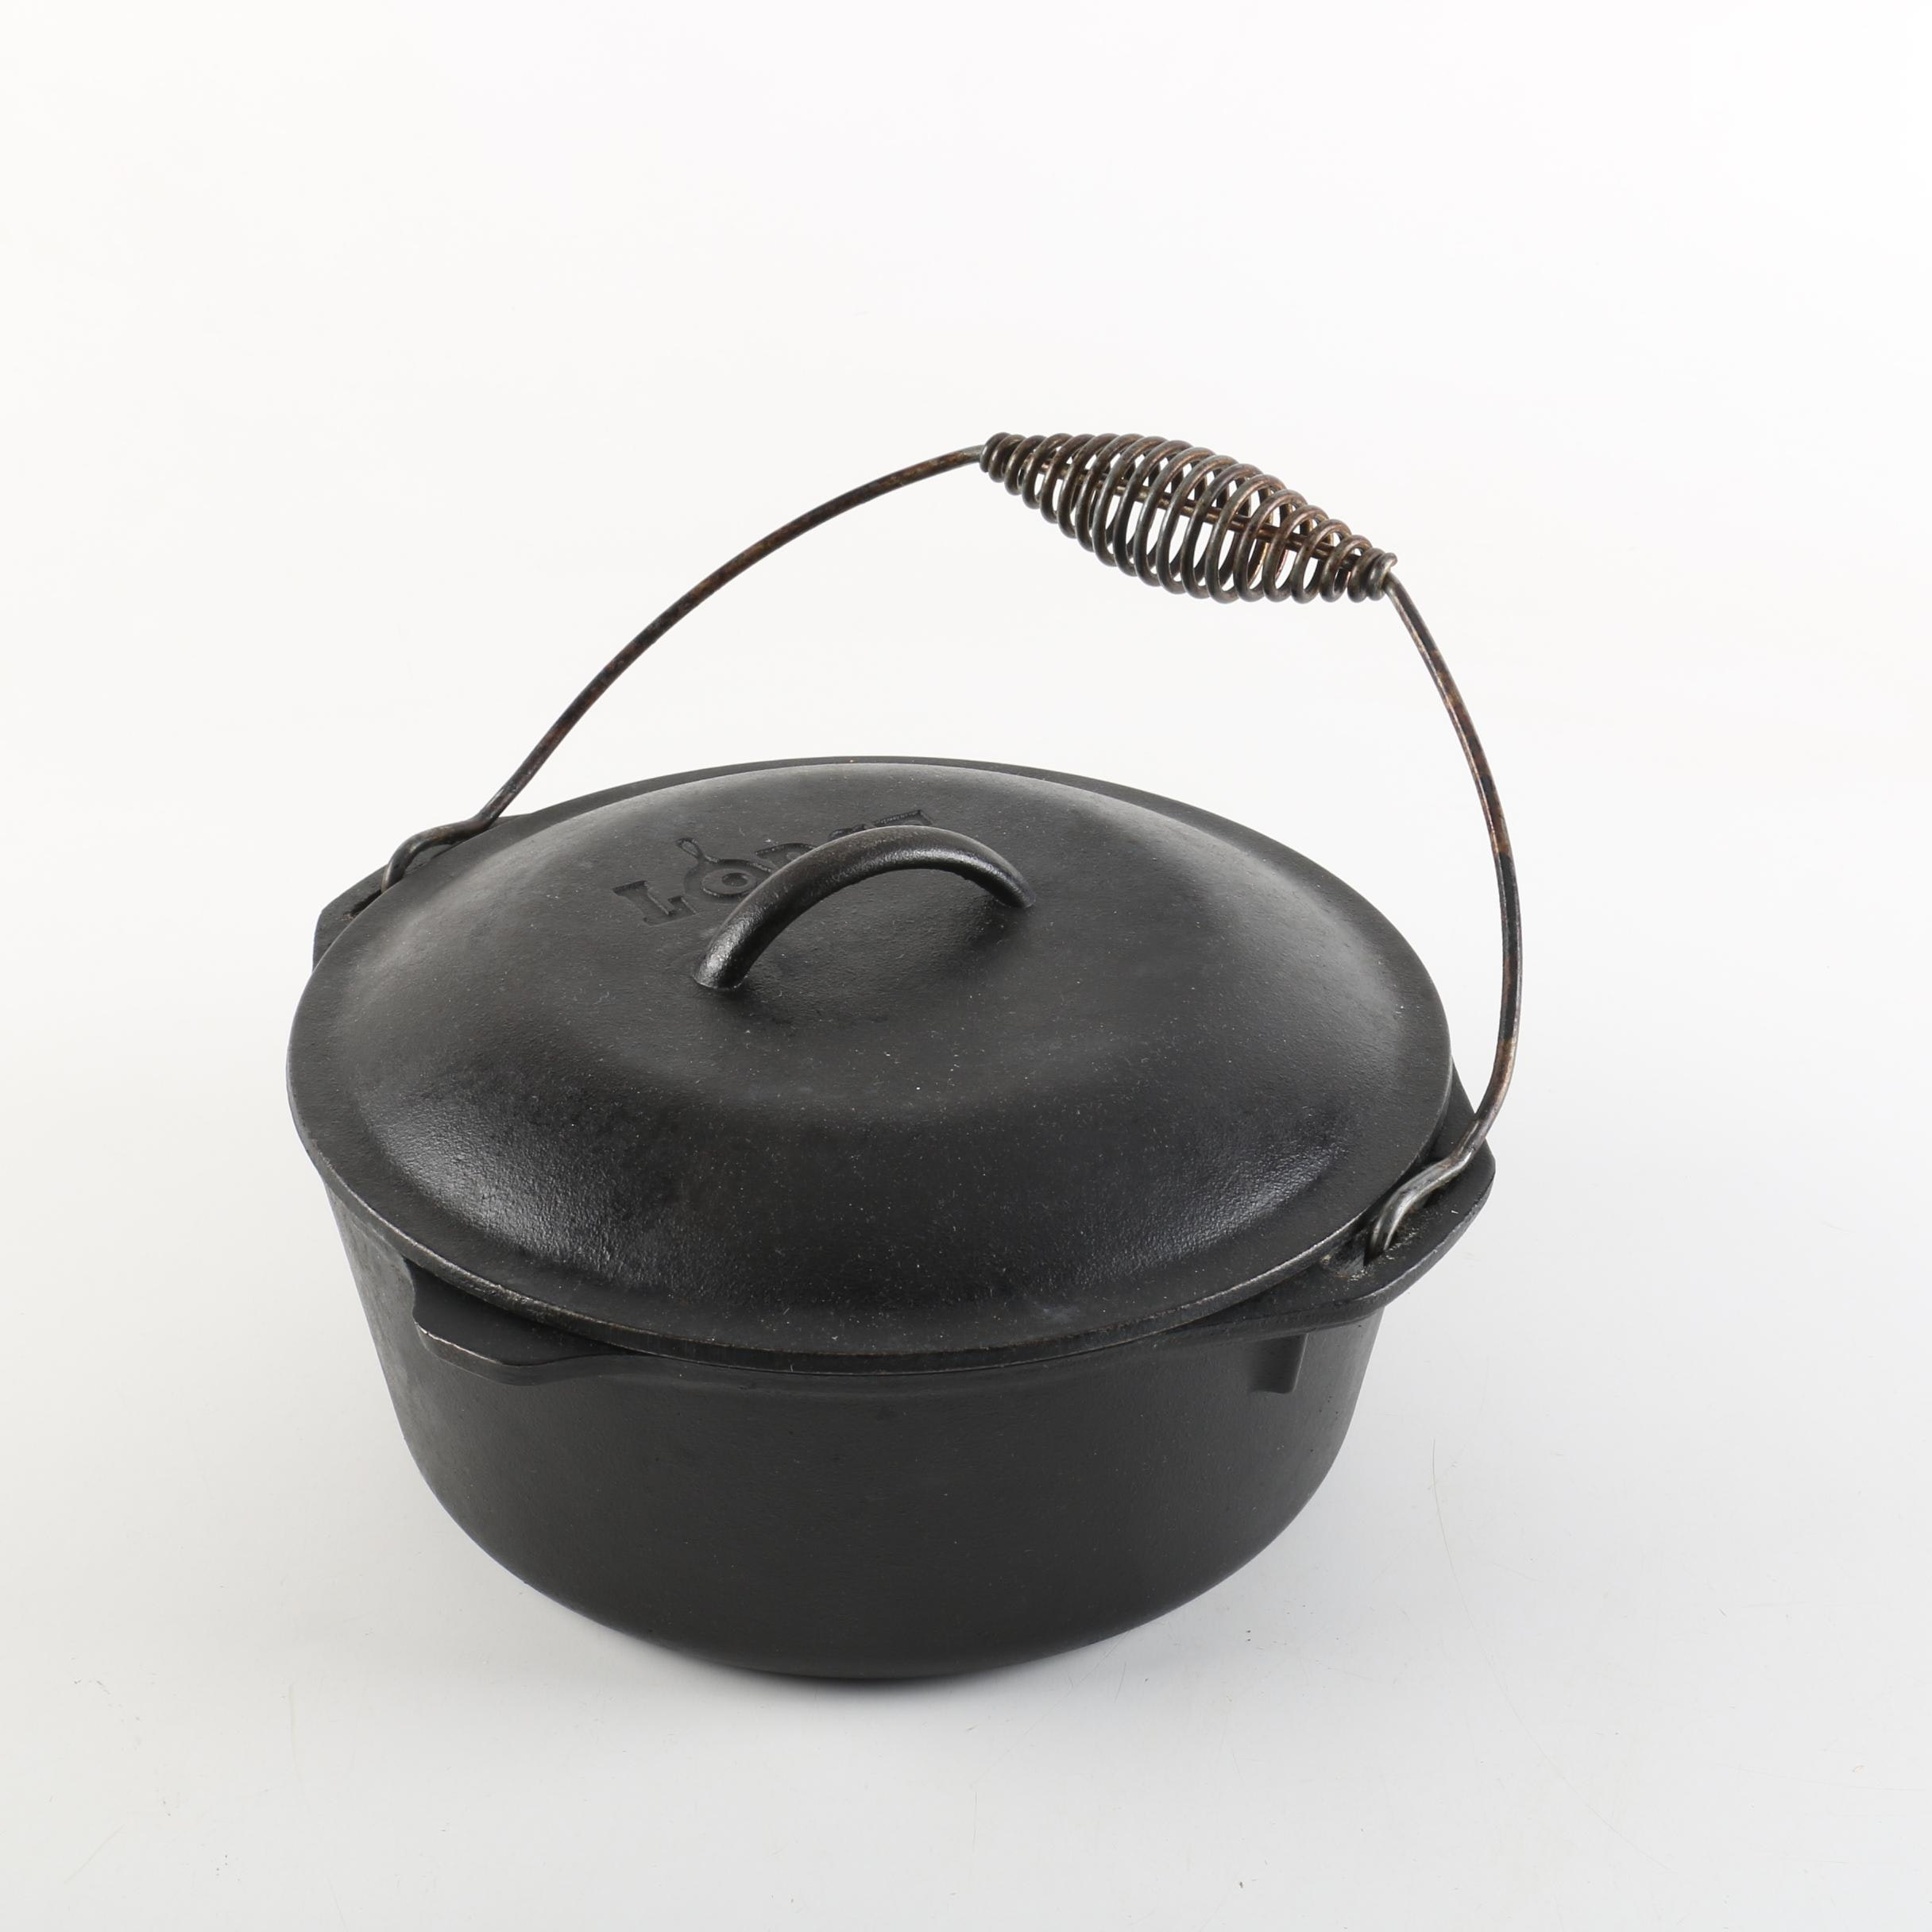 Lodge Cast Iron Dutch Oven with Swing Handle